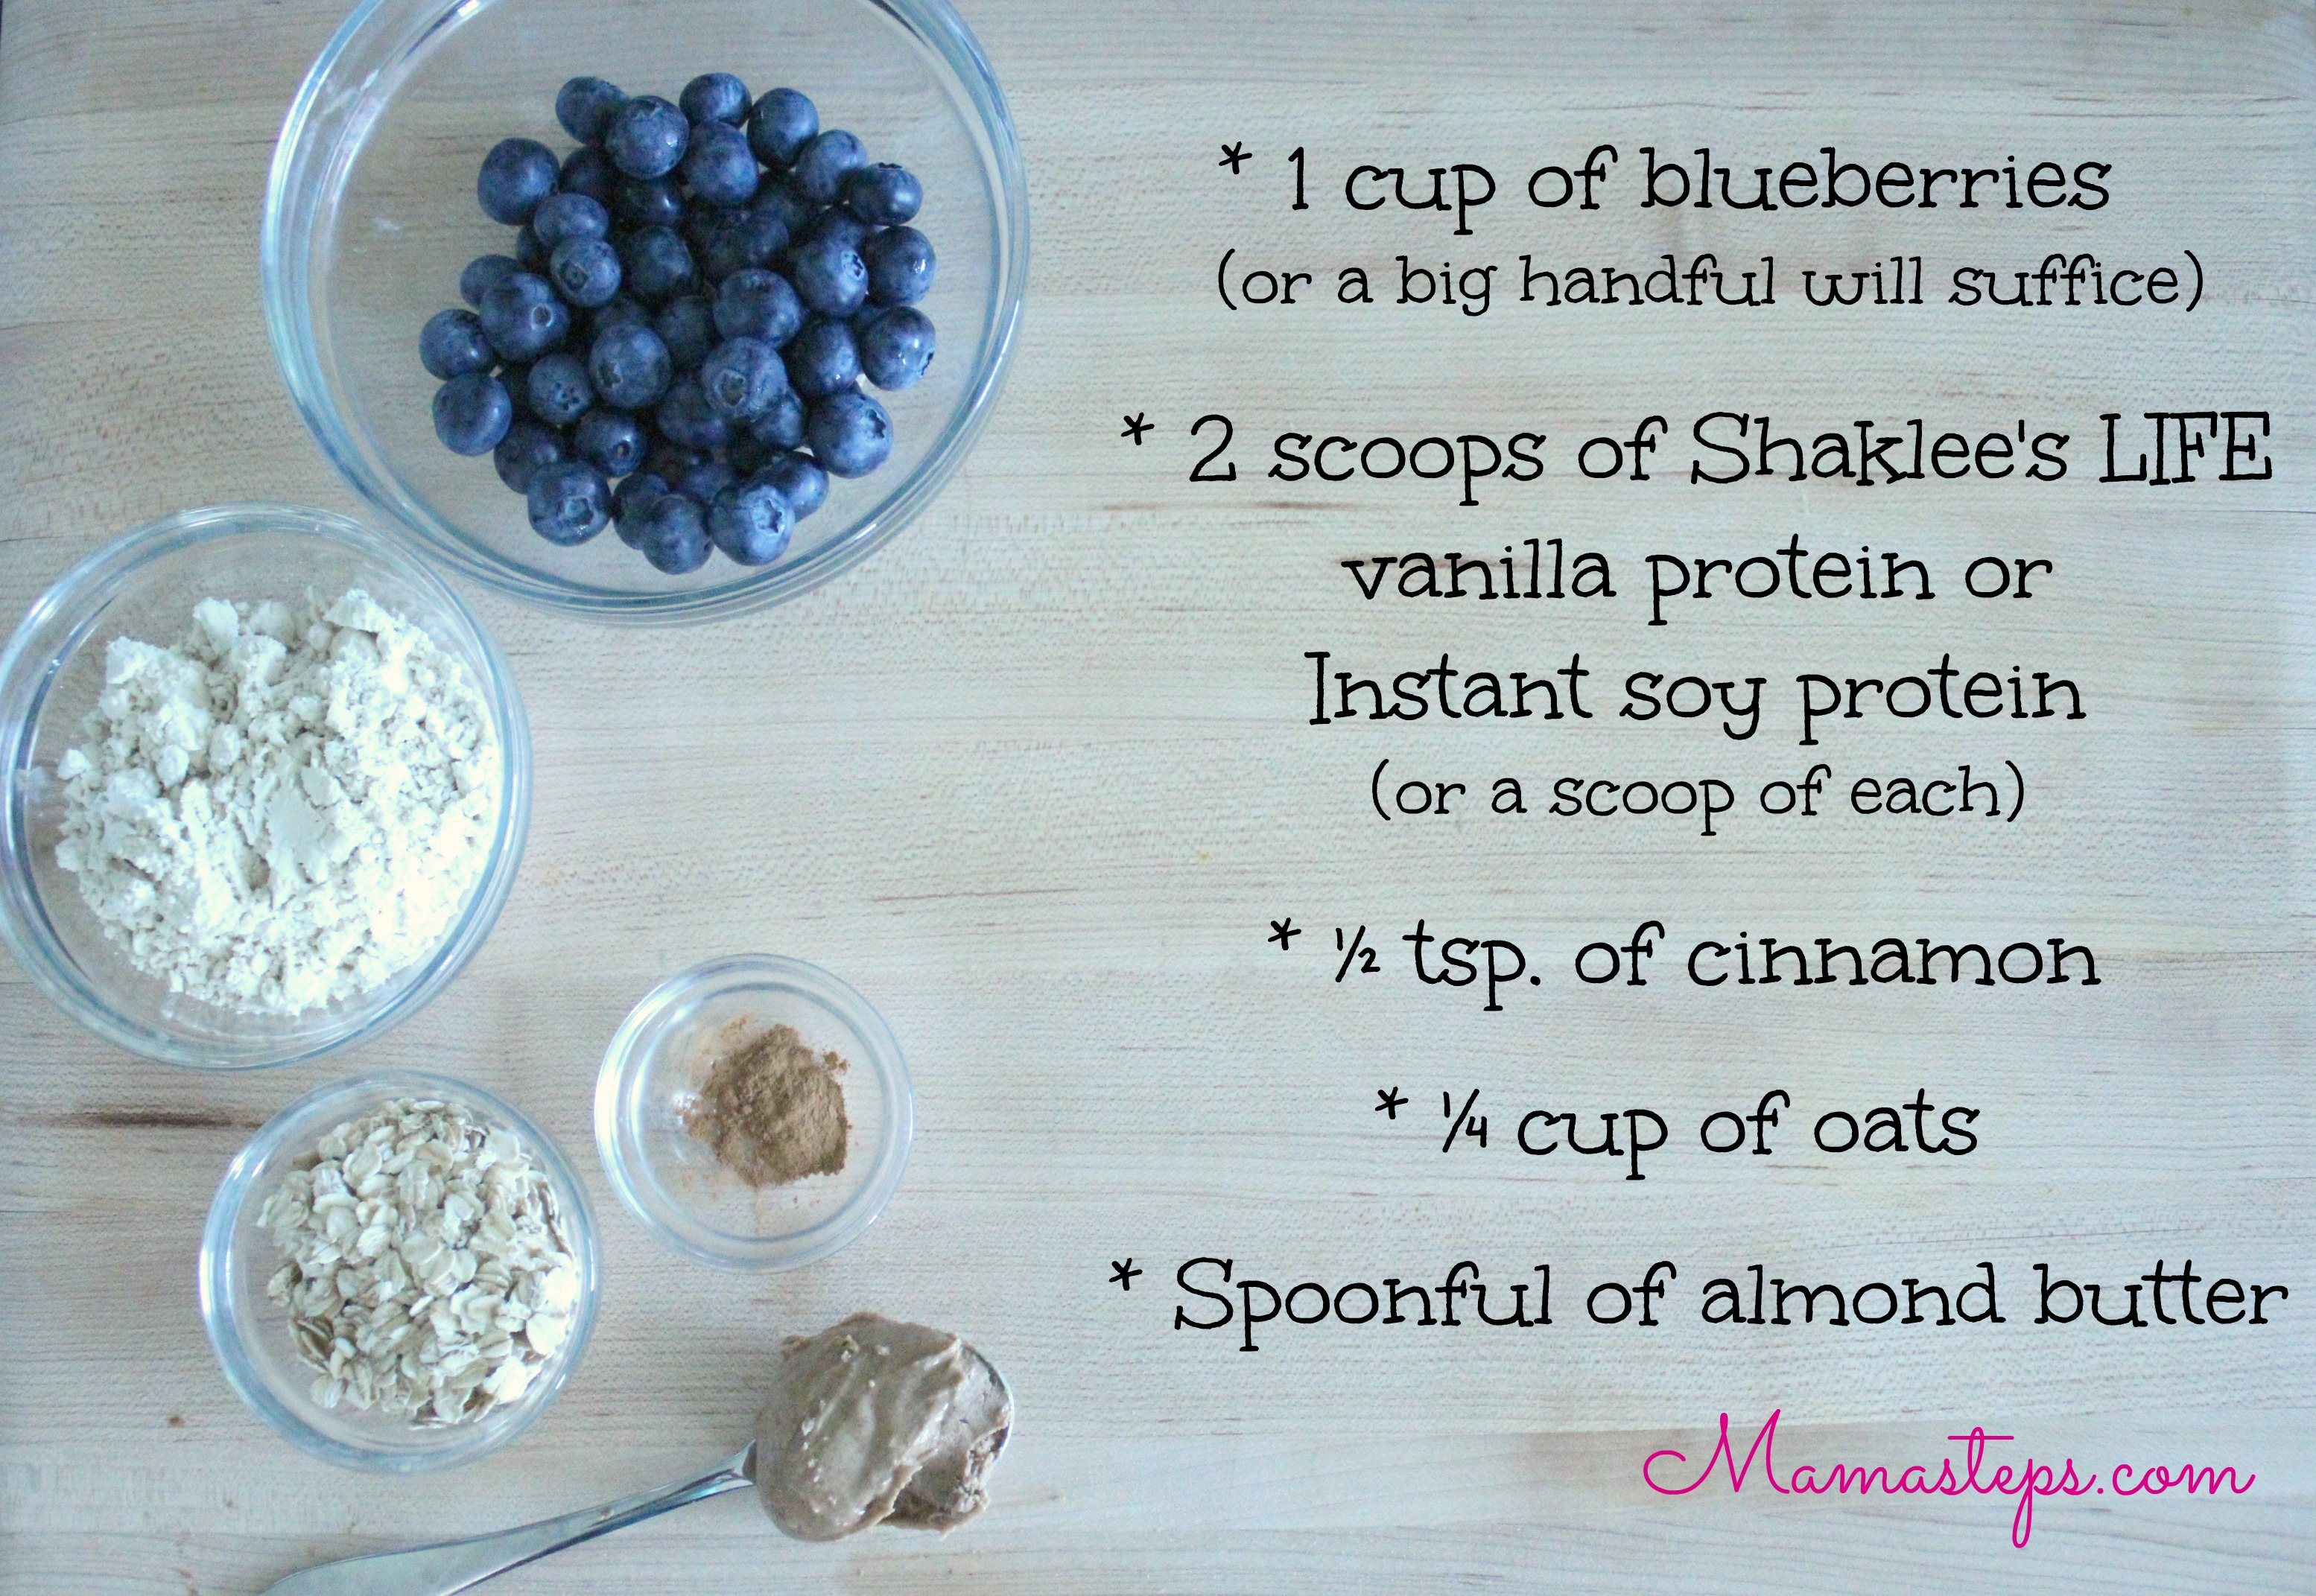 Blueberry Muffin Smoothie Ingredients